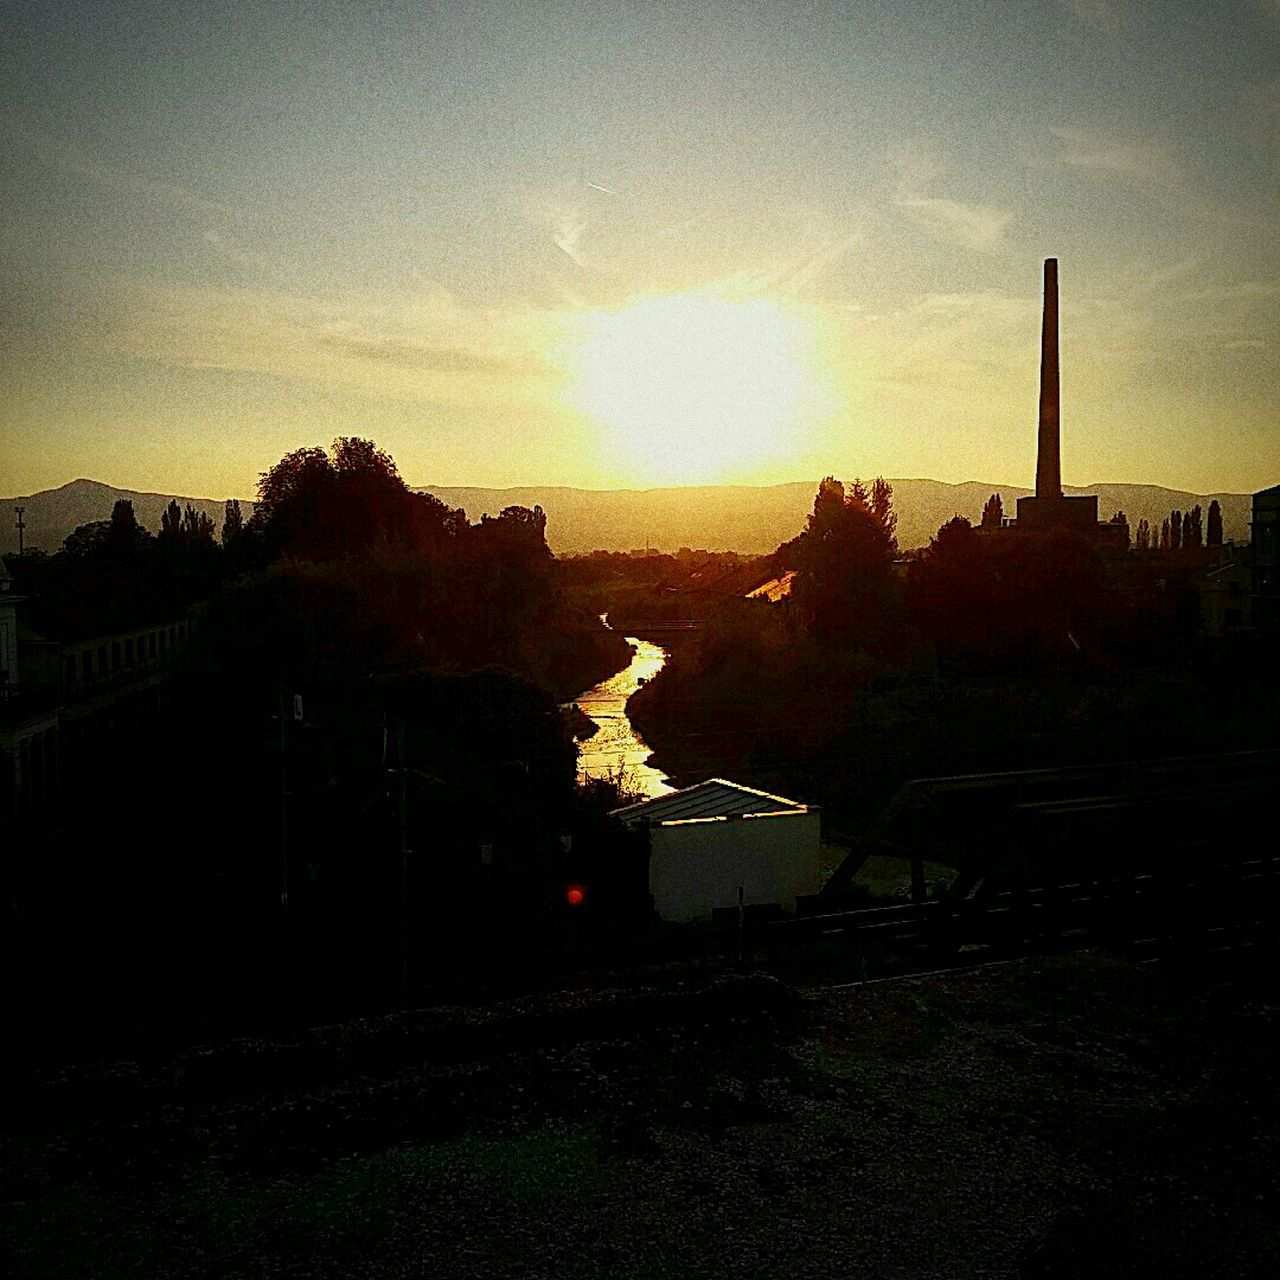 """Štofara"" old abandoned factory by 1990s Sunset Architecture Building Exterior Water Built Structure Sun High Angle View Sunset Architecture Building Exterior Water Built Structure Sun High Angle View Sky River Cloud - Sky Sunbeam Outdoors Canal Scenics Lens Flare No People Factory Zone Town"